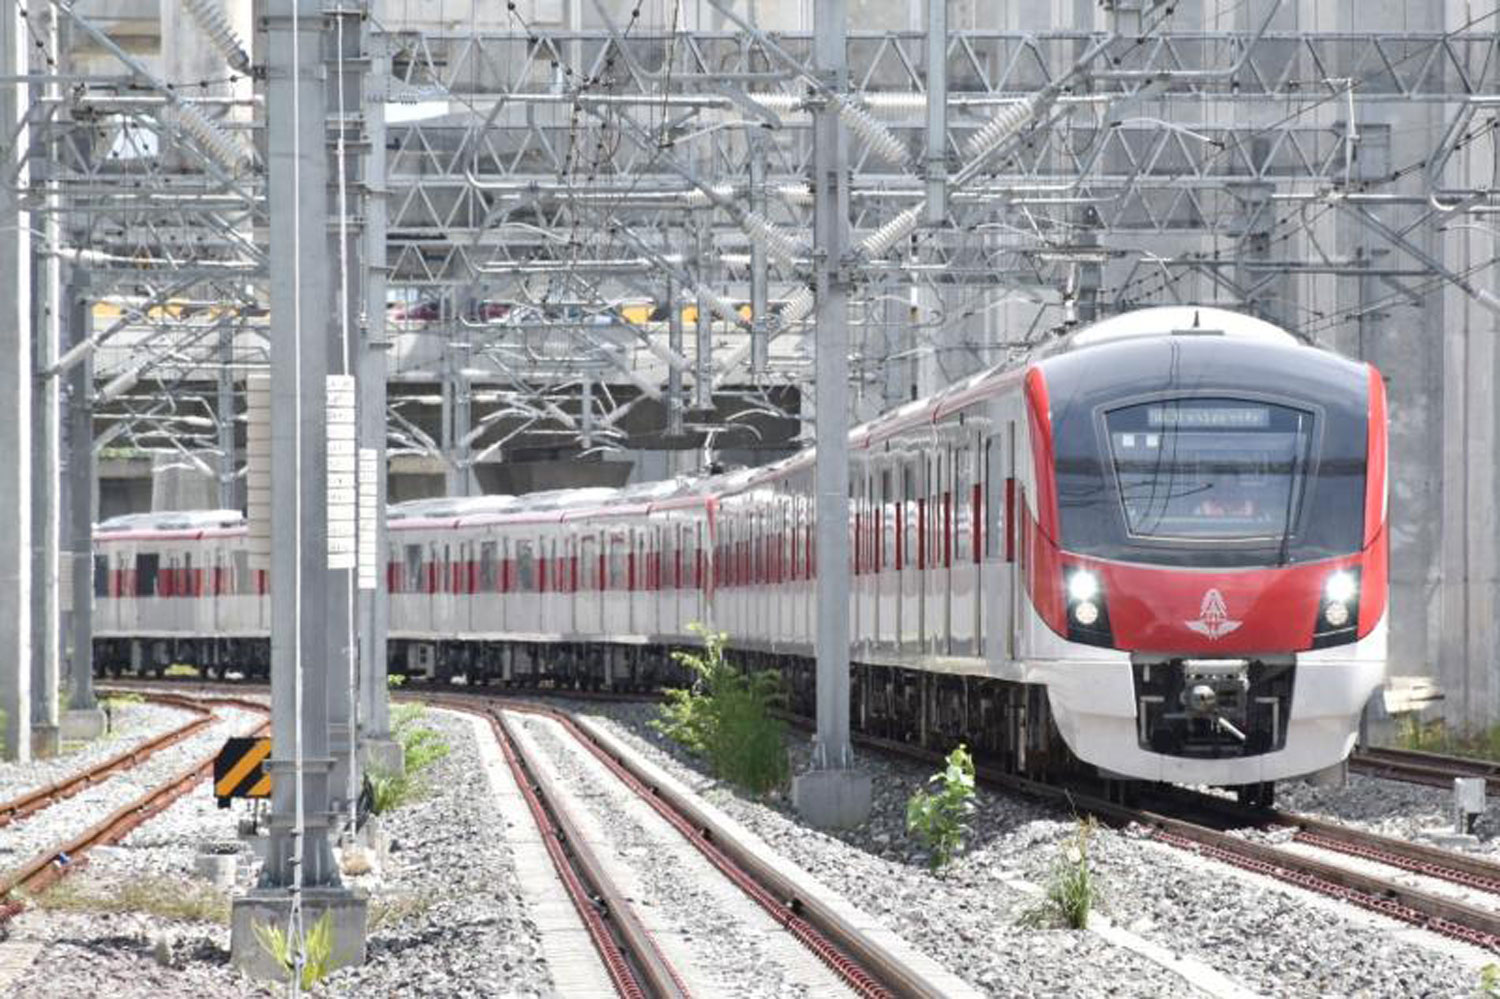 State Railway of Thailand will hold a soft launch of Red Line services on Aug 2 as planned. (State Railway of Thailand photo)